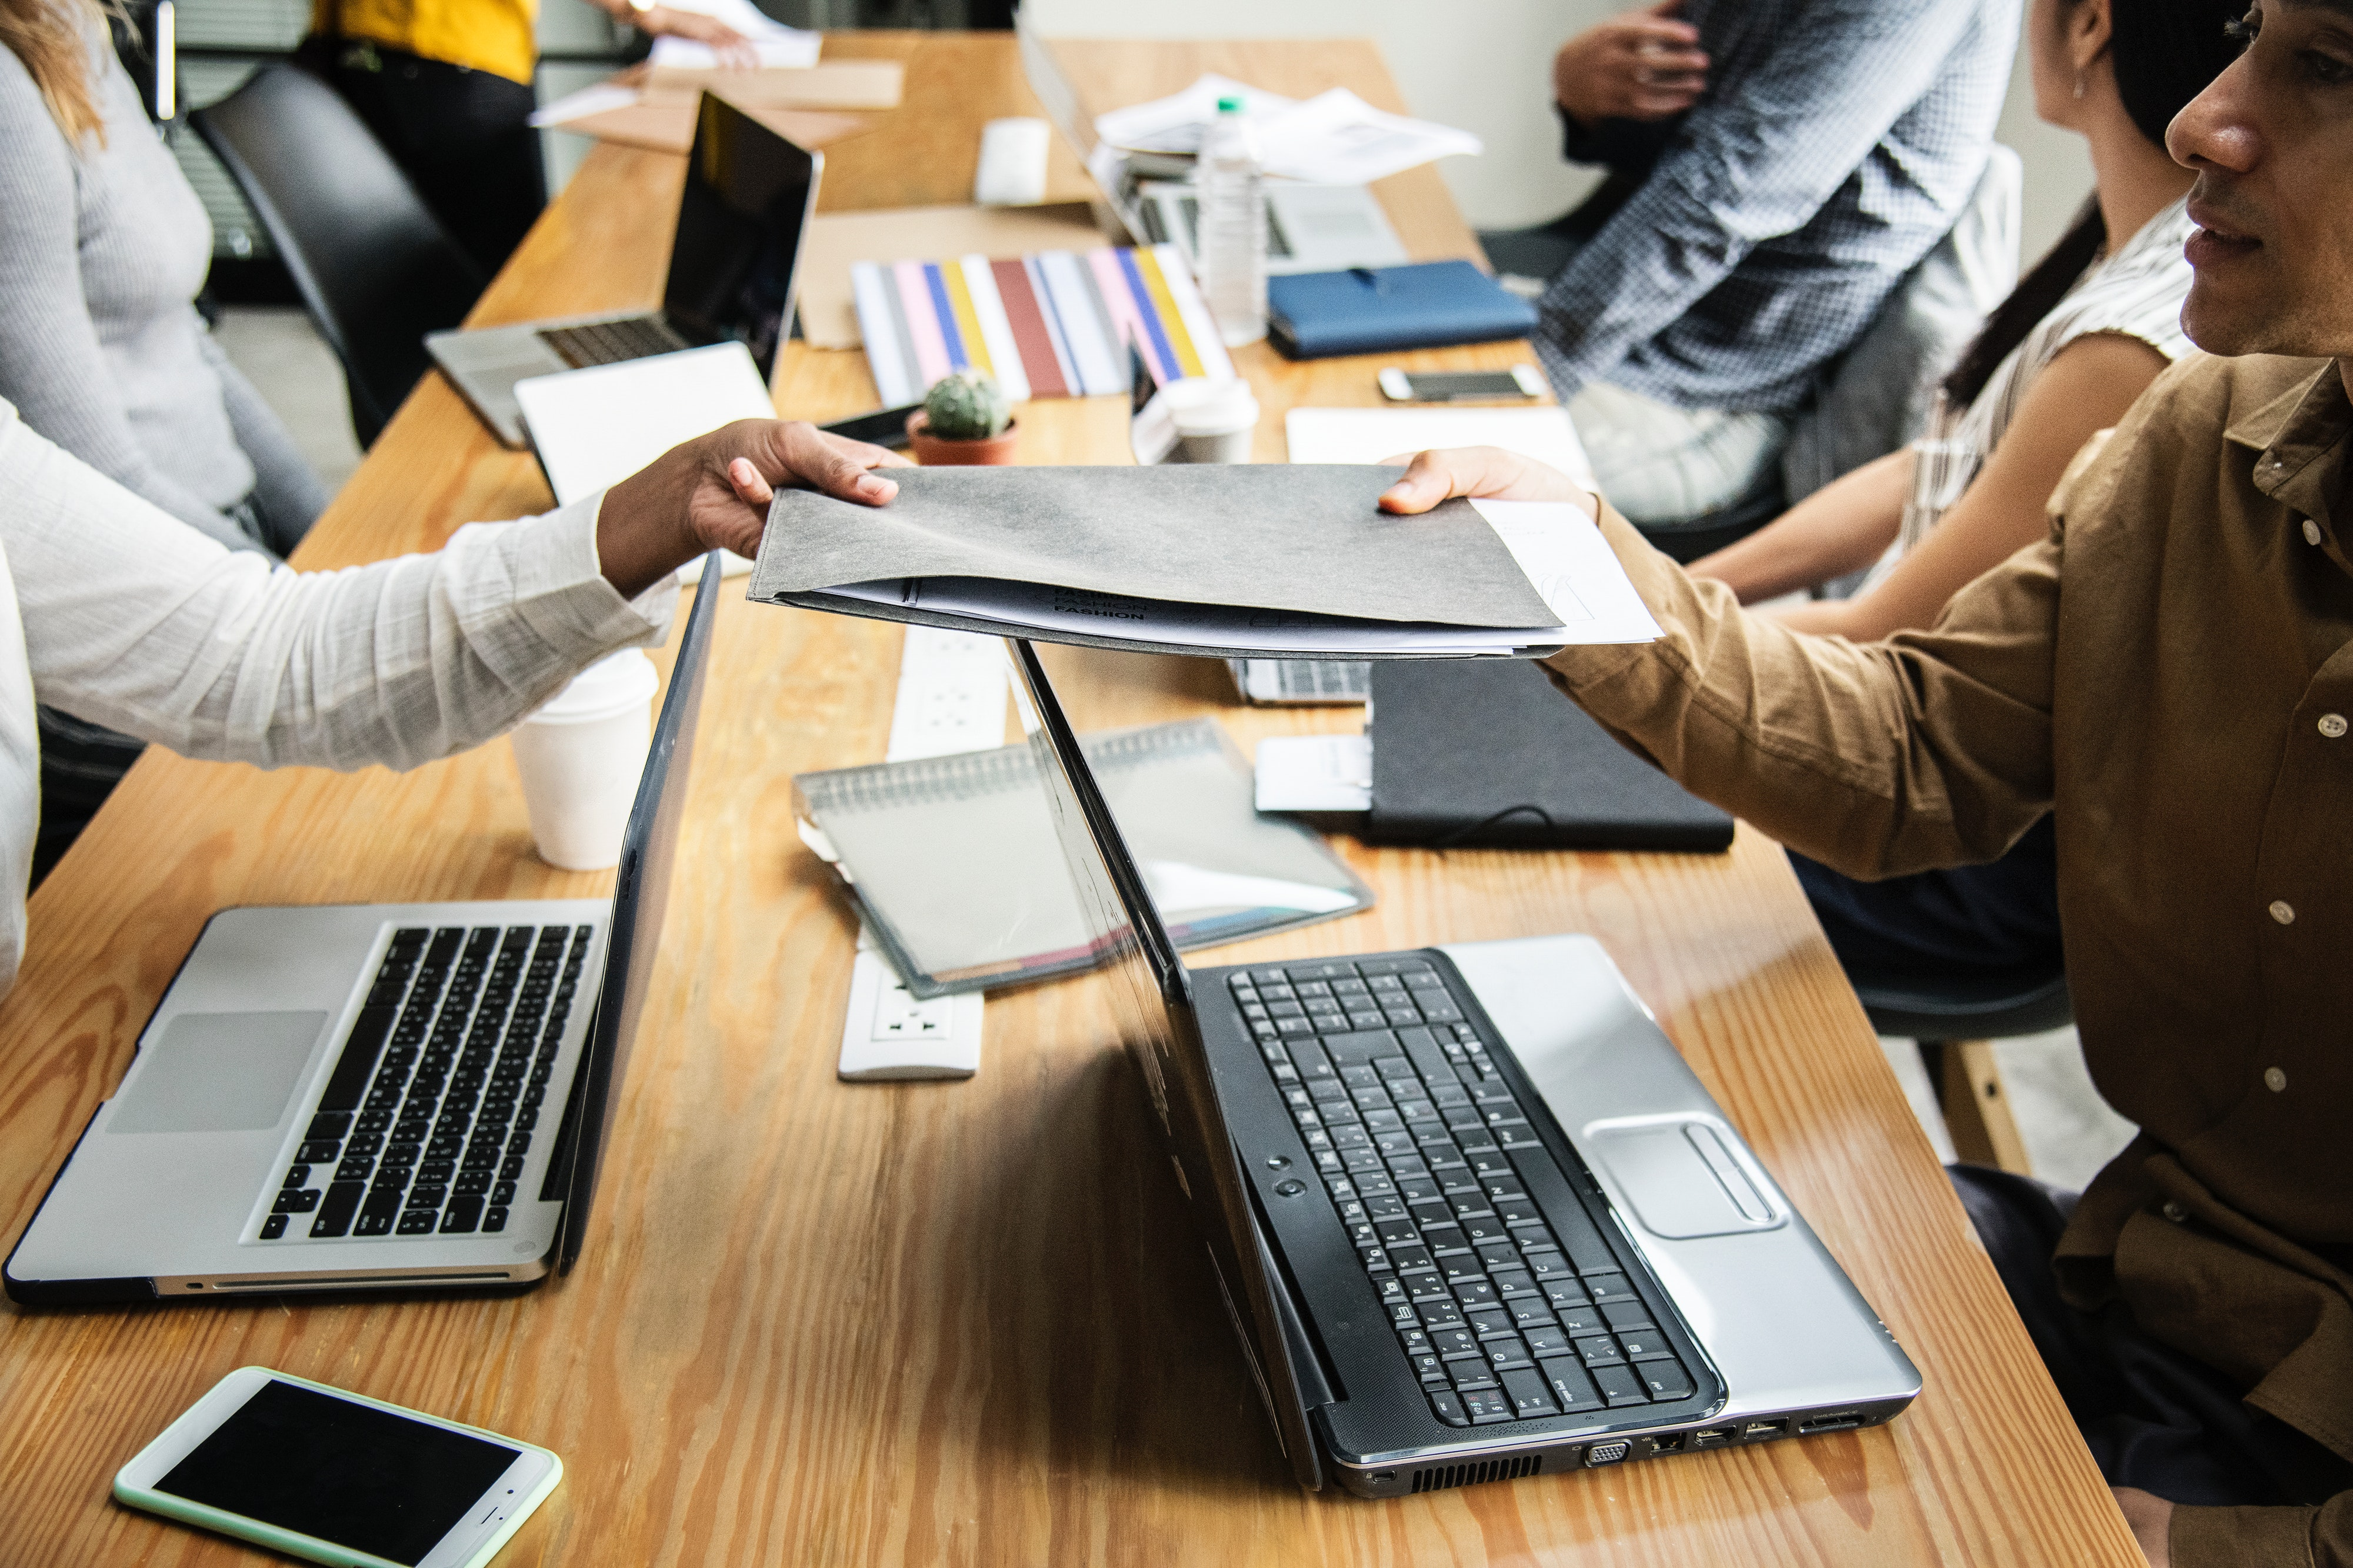 strategies for building trust with employees